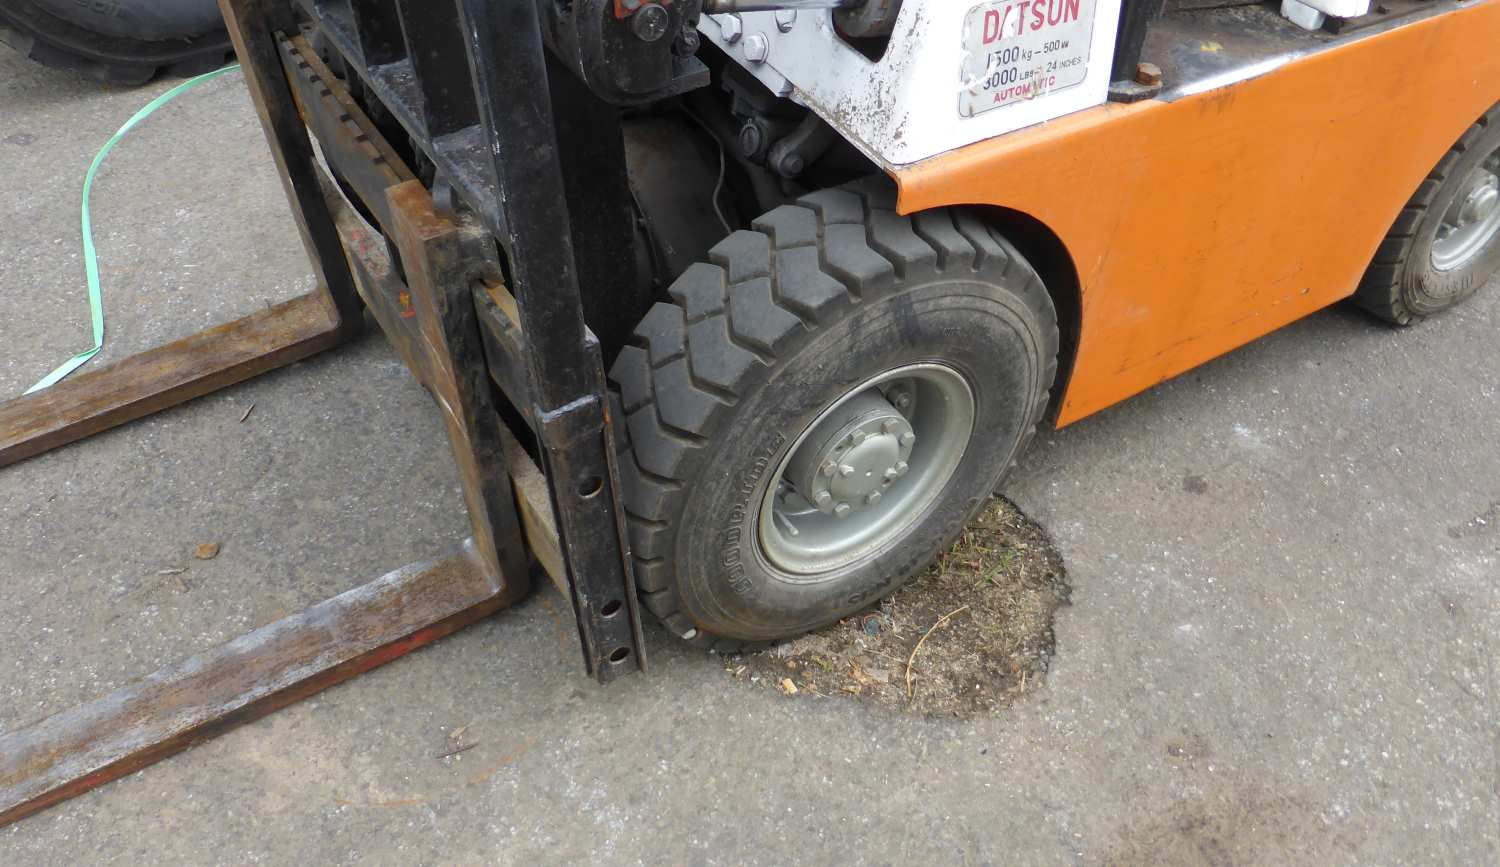 How Can You Reduce Forklift Operator Injuries